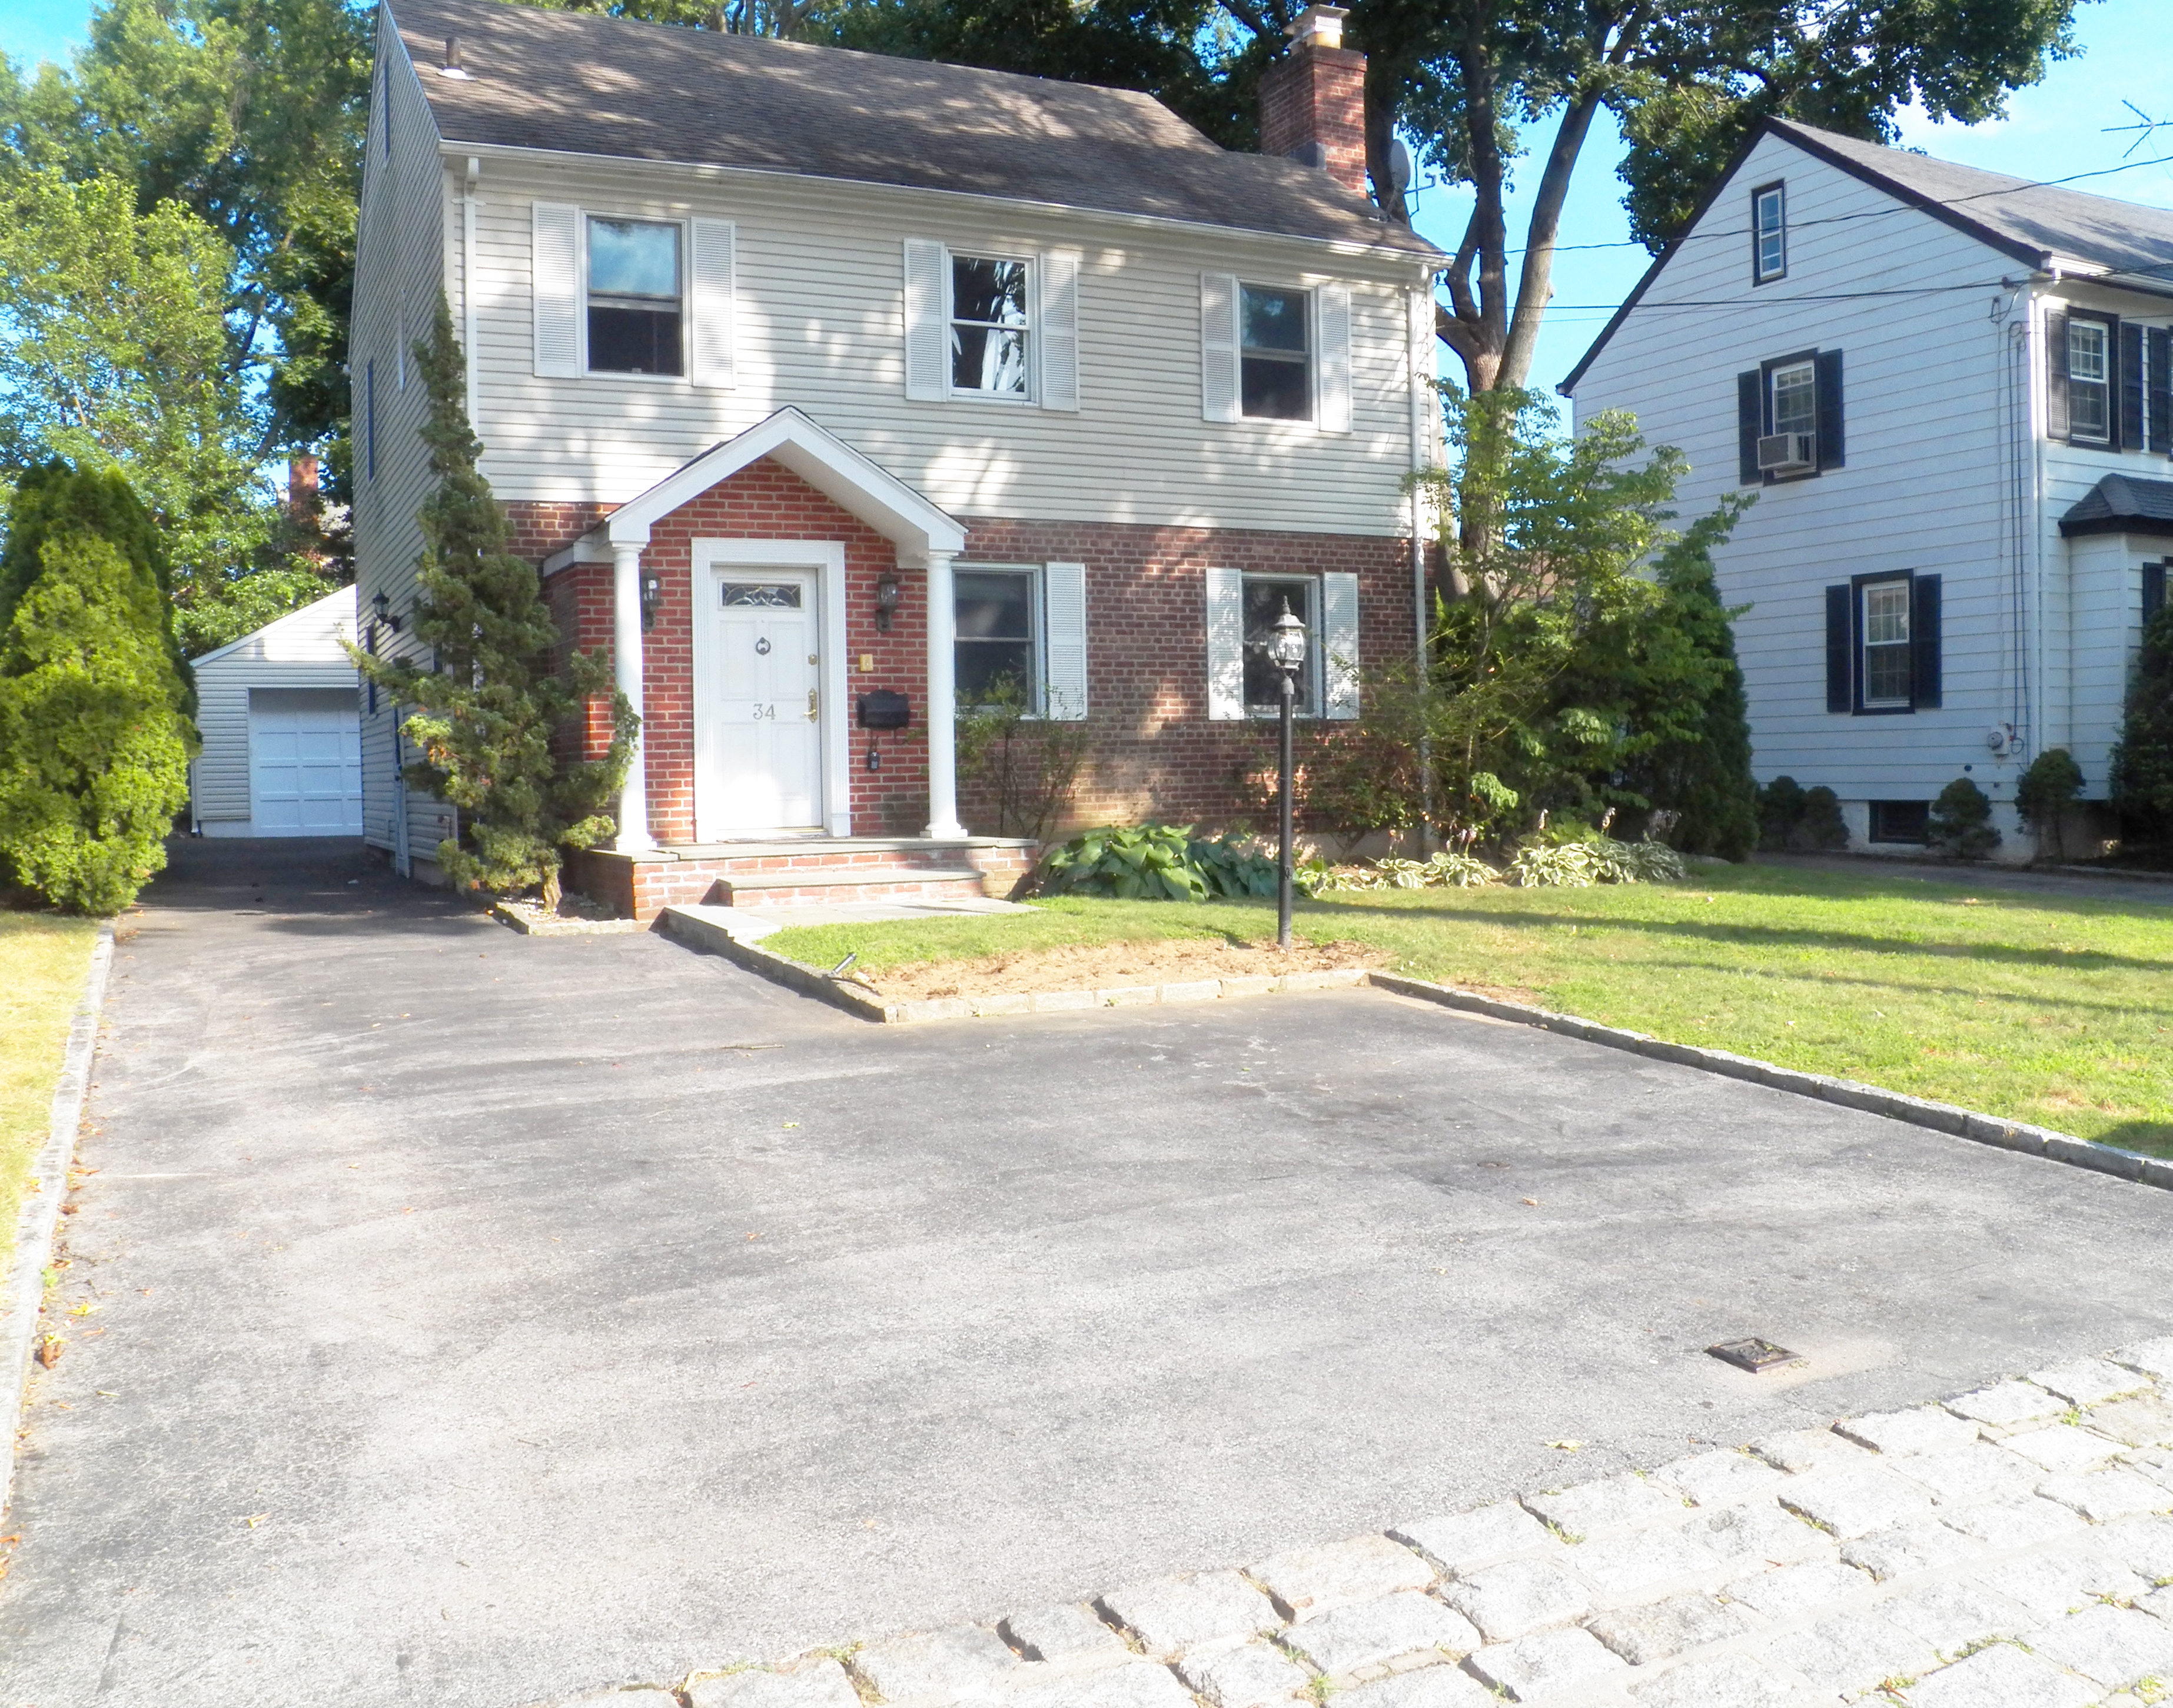 Single Family Home for Sale at Wilmont Park Colonial 34 Bradley Road Scarsdale, New York 10583 United States